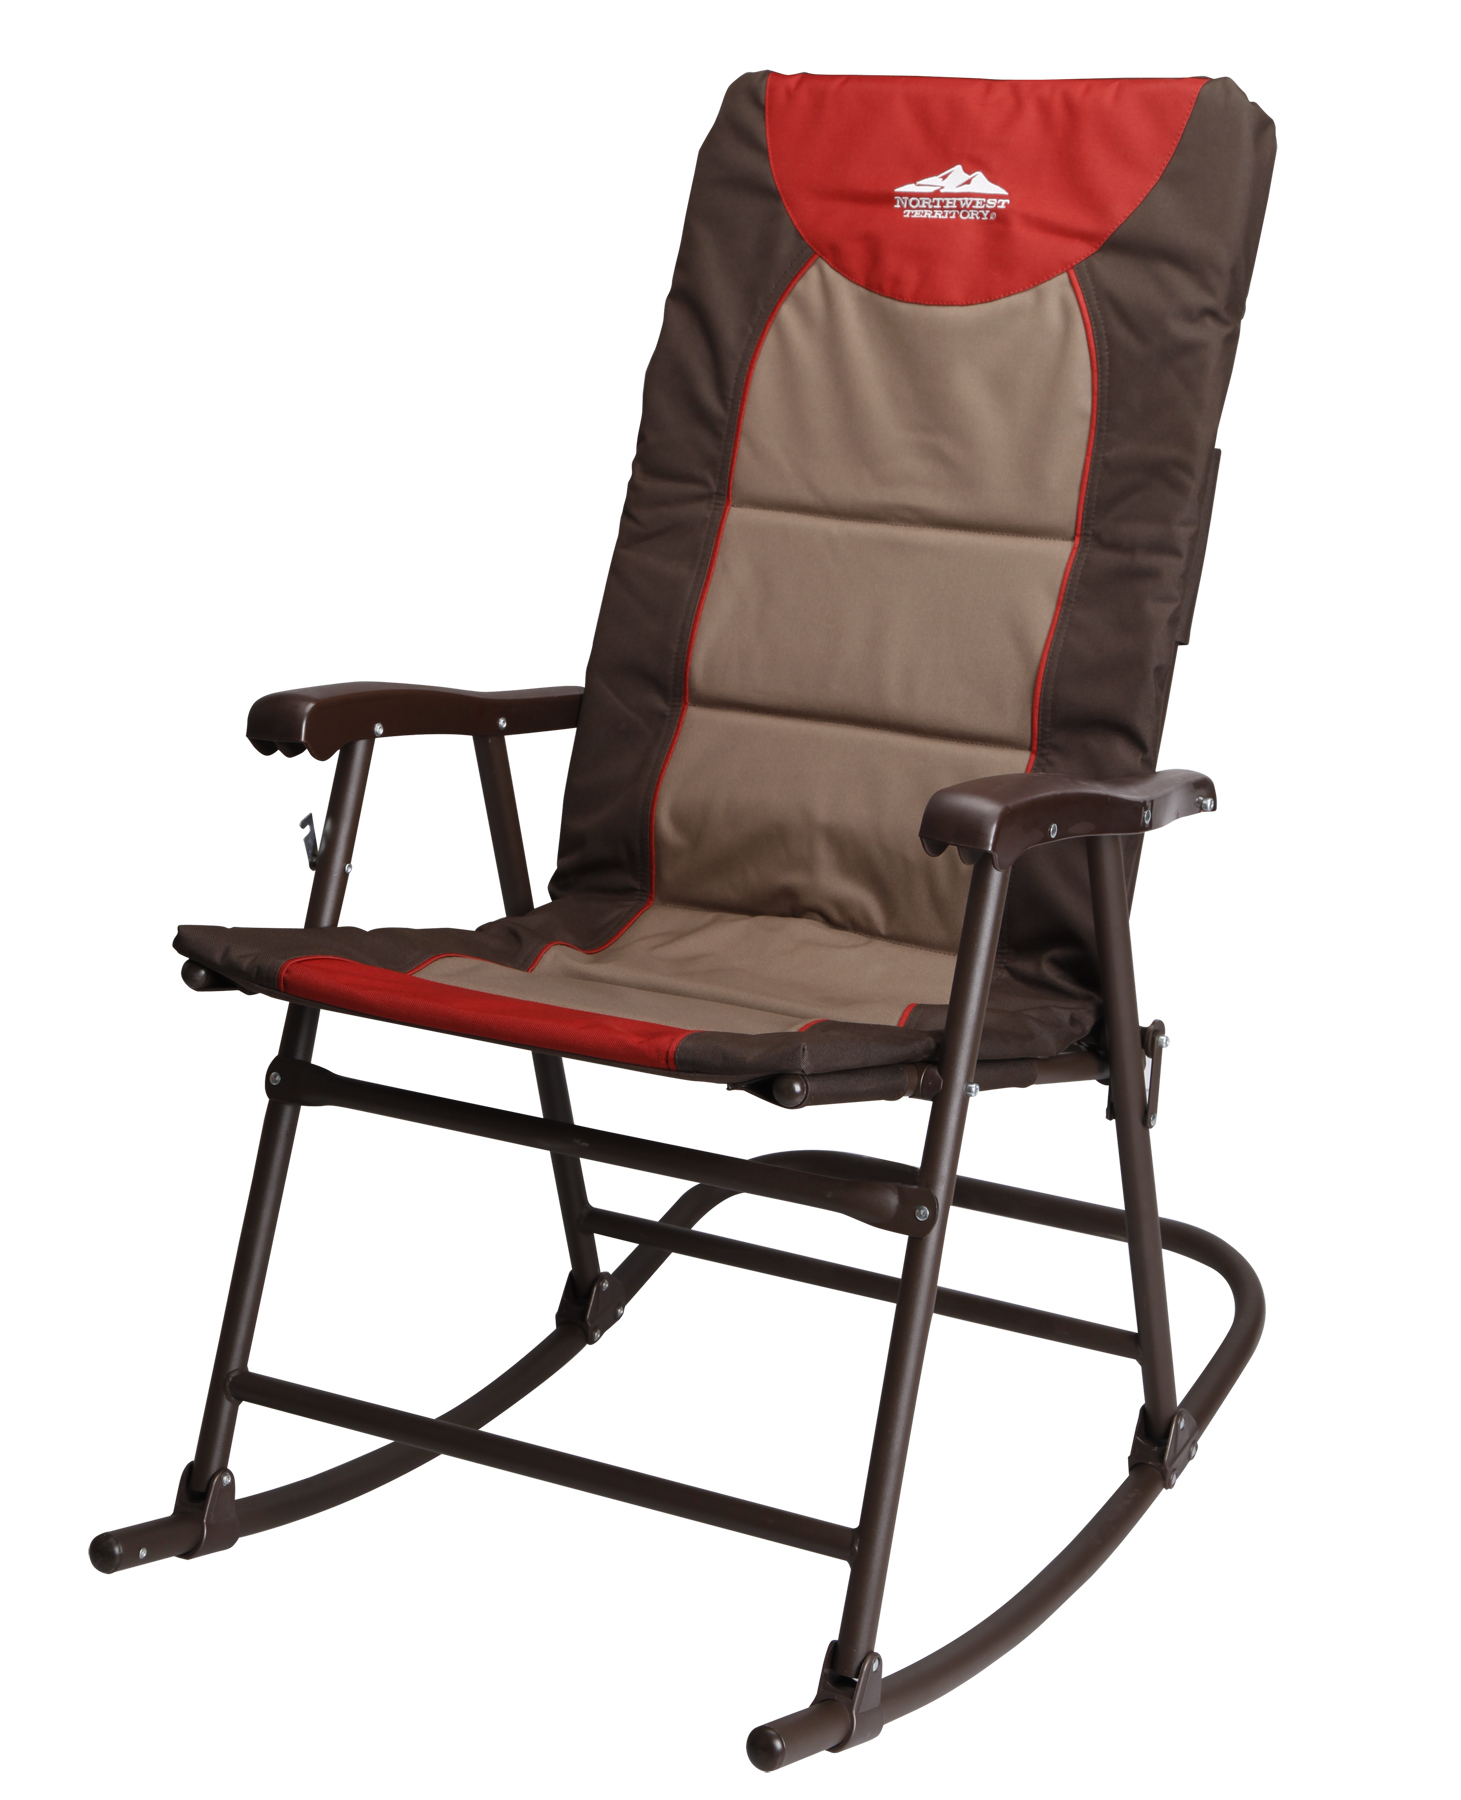 Campsite Rocking Chair Portable Stylish Seating From Kmart